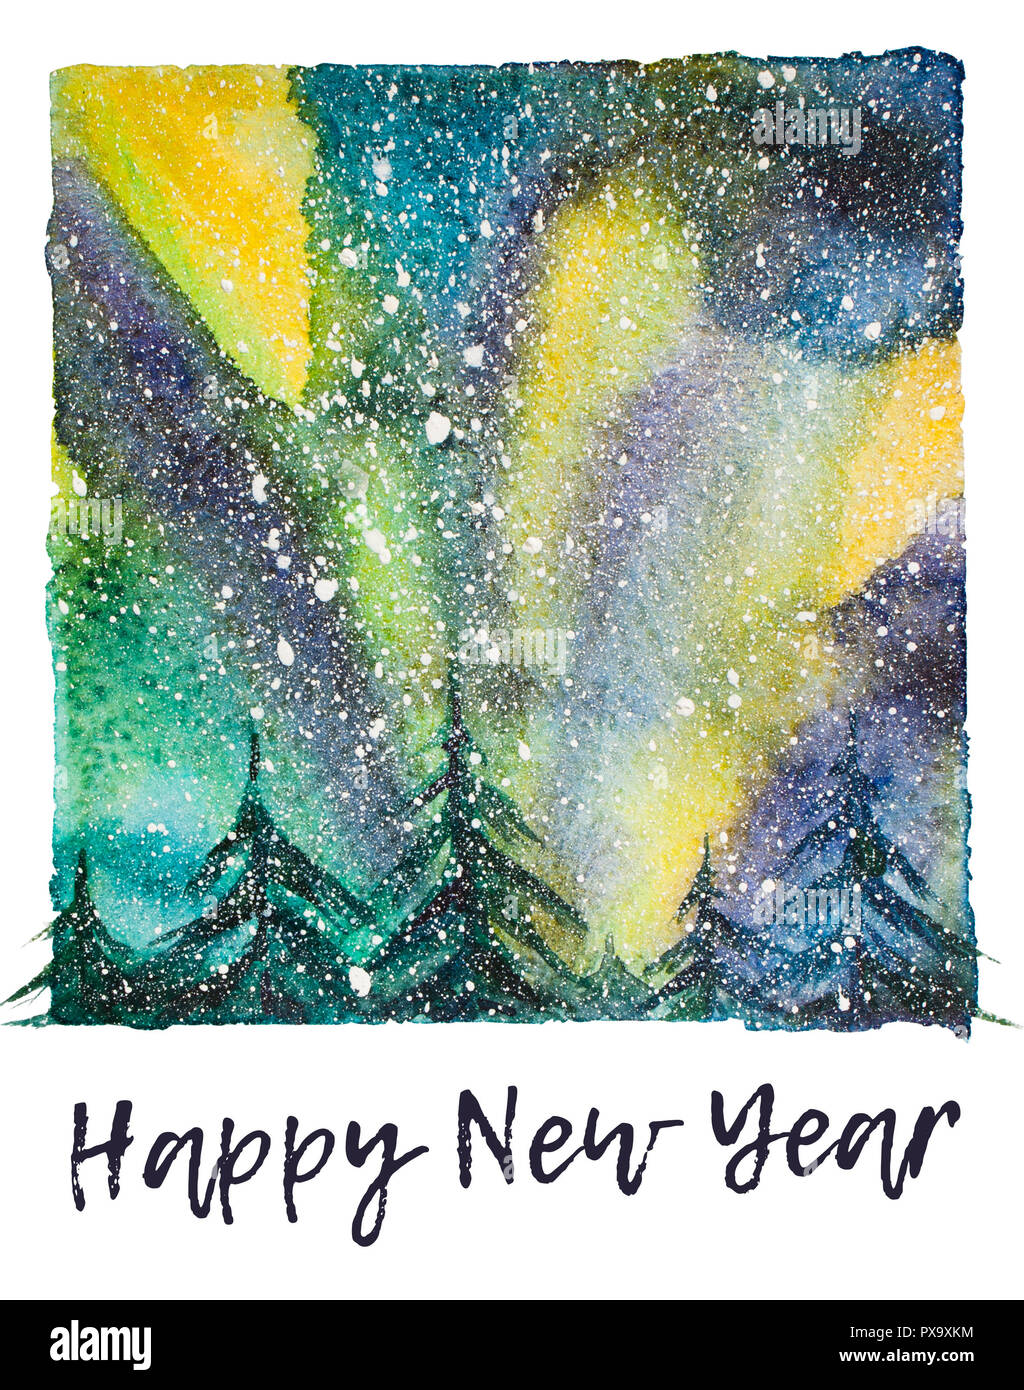 Watercolor northern lights illustration with artistic brushy happy new year lettering below like in momentary photo - Stock Image